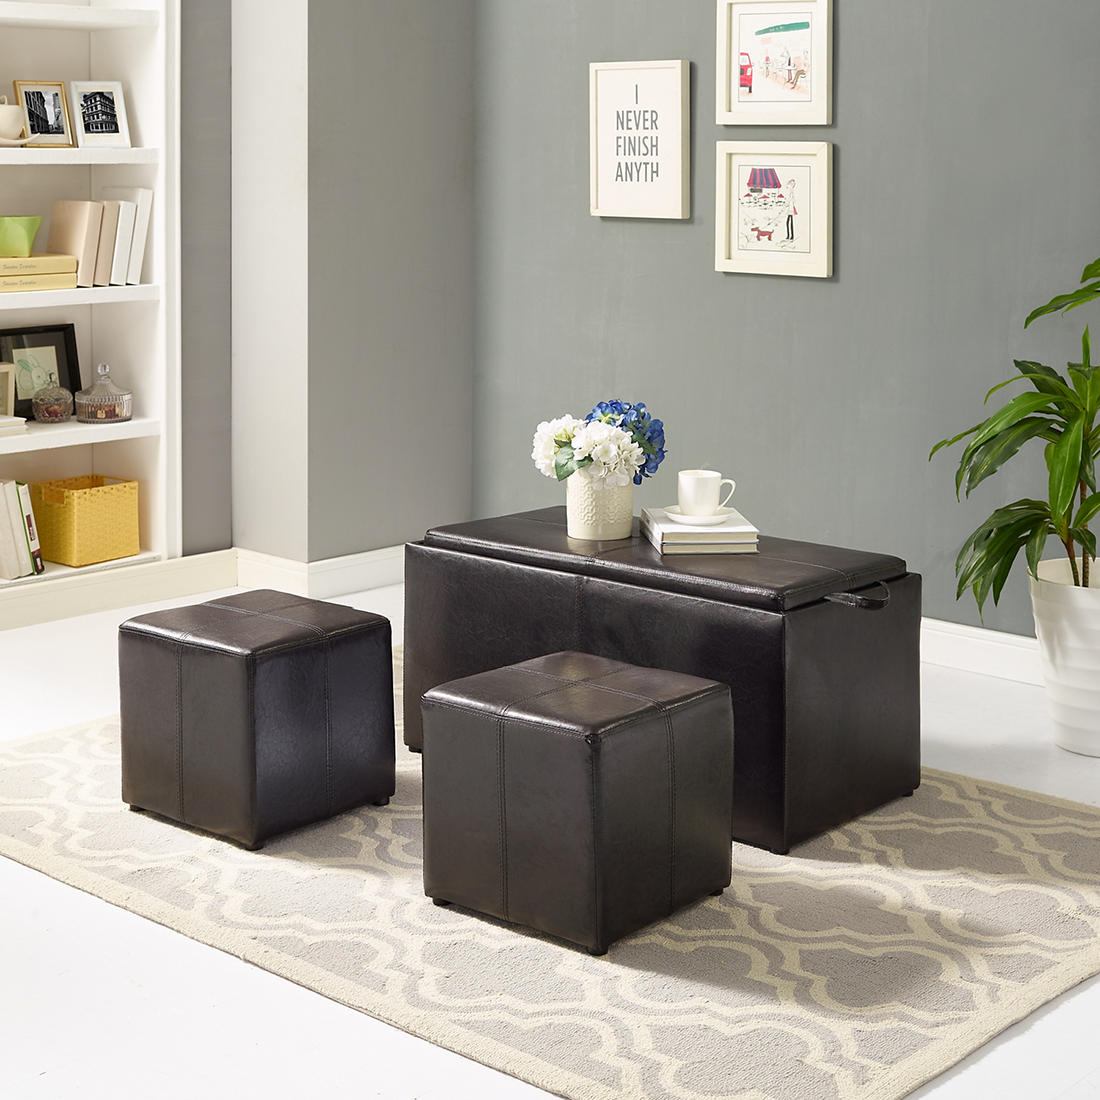 Magnificent 3 Pc Ottoman Set Gmtry Best Dining Table And Chair Ideas Images Gmtryco